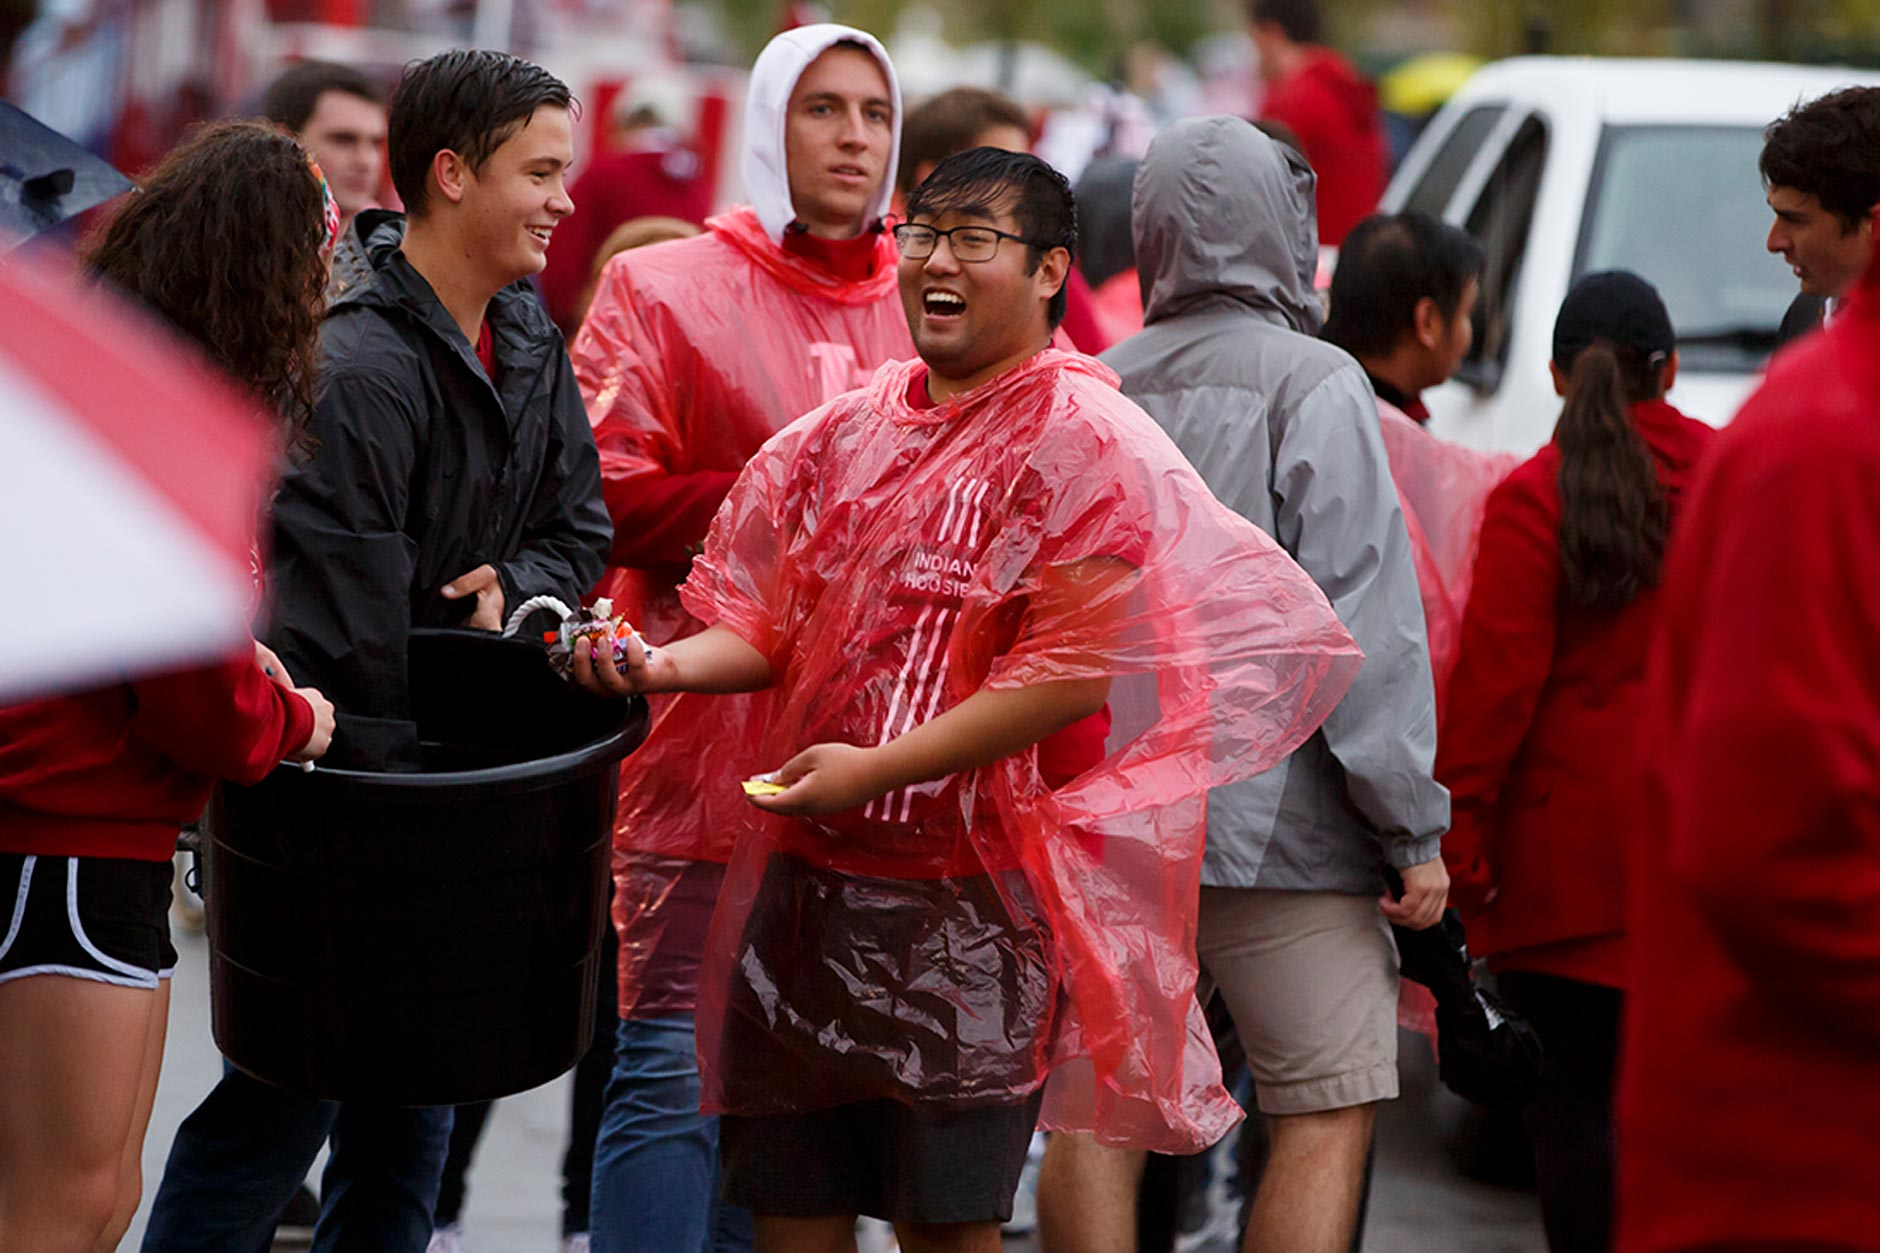 Students hand out candy along the route during the Indiana University Bloomington Homecoming Parade on Friday, Oct. 11, 2019. (James Brosher/Indiana University)